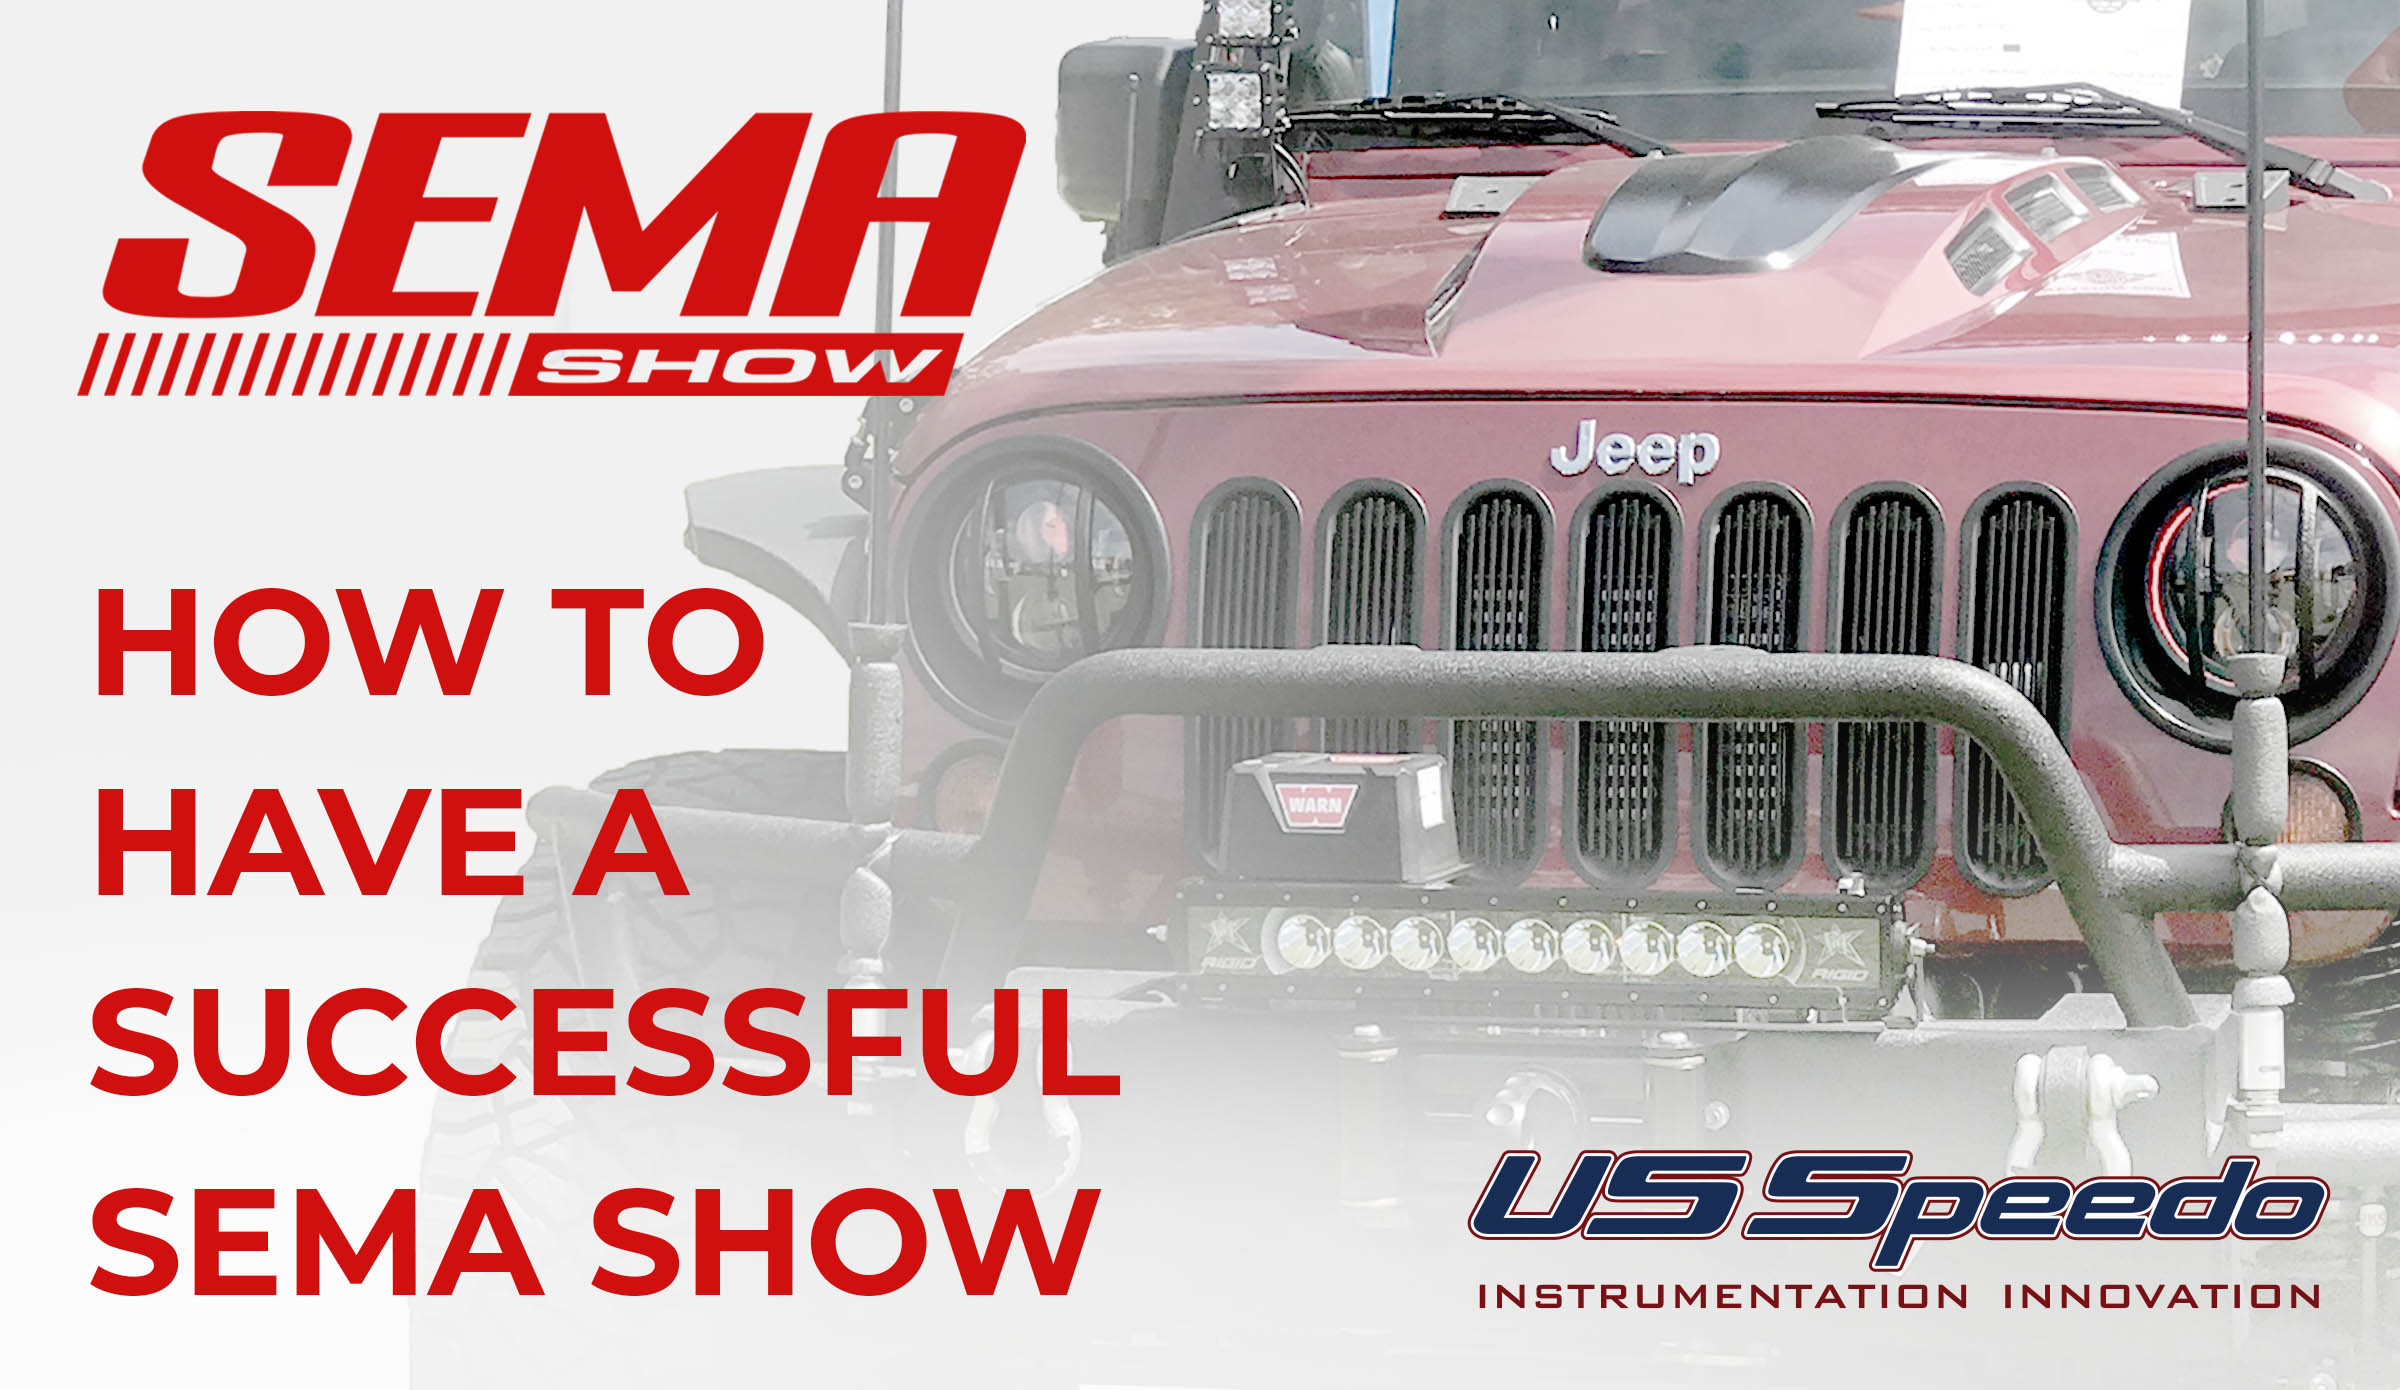 SEMA Show! What it takes to have a successful show!